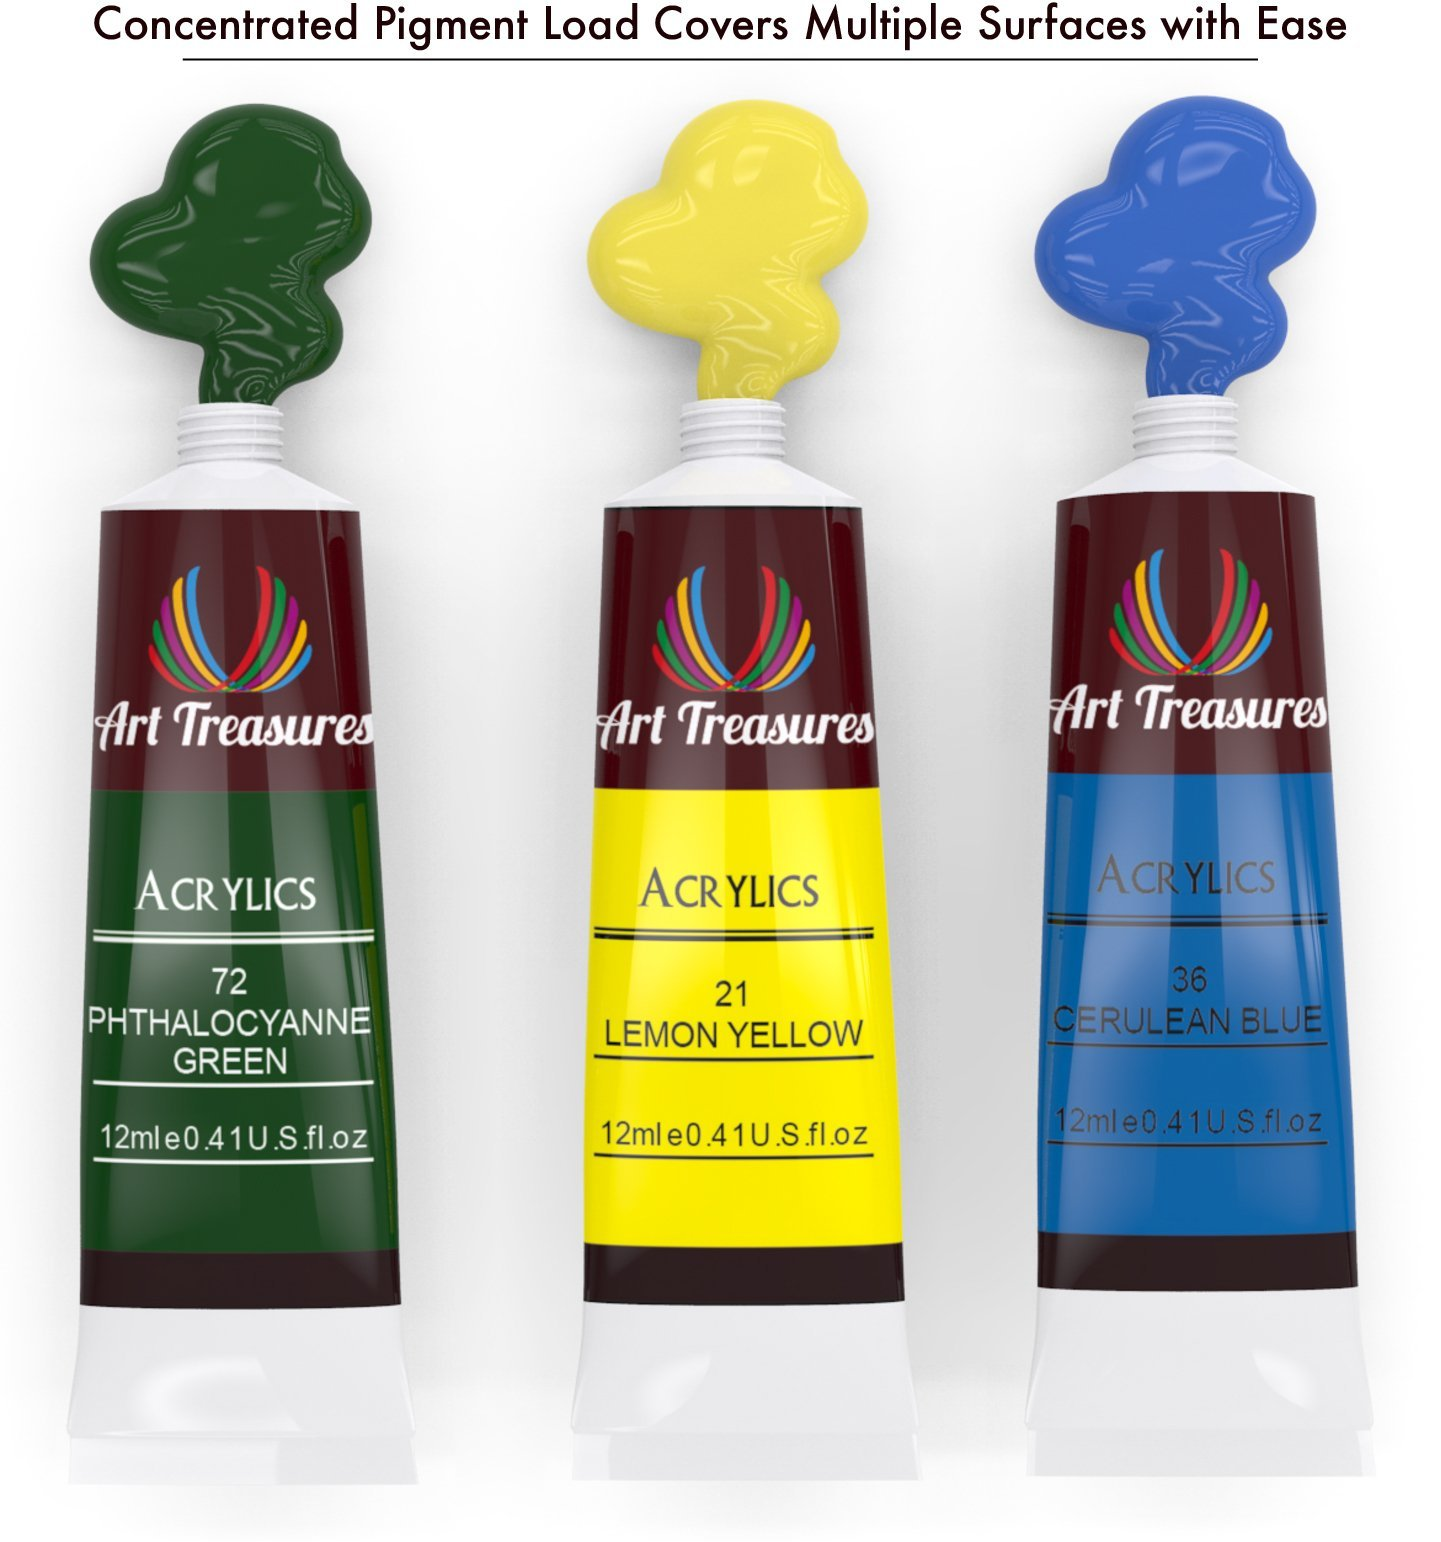 Acrylic Craft Paint - 24 Pack by Art Treasures (Image #4)